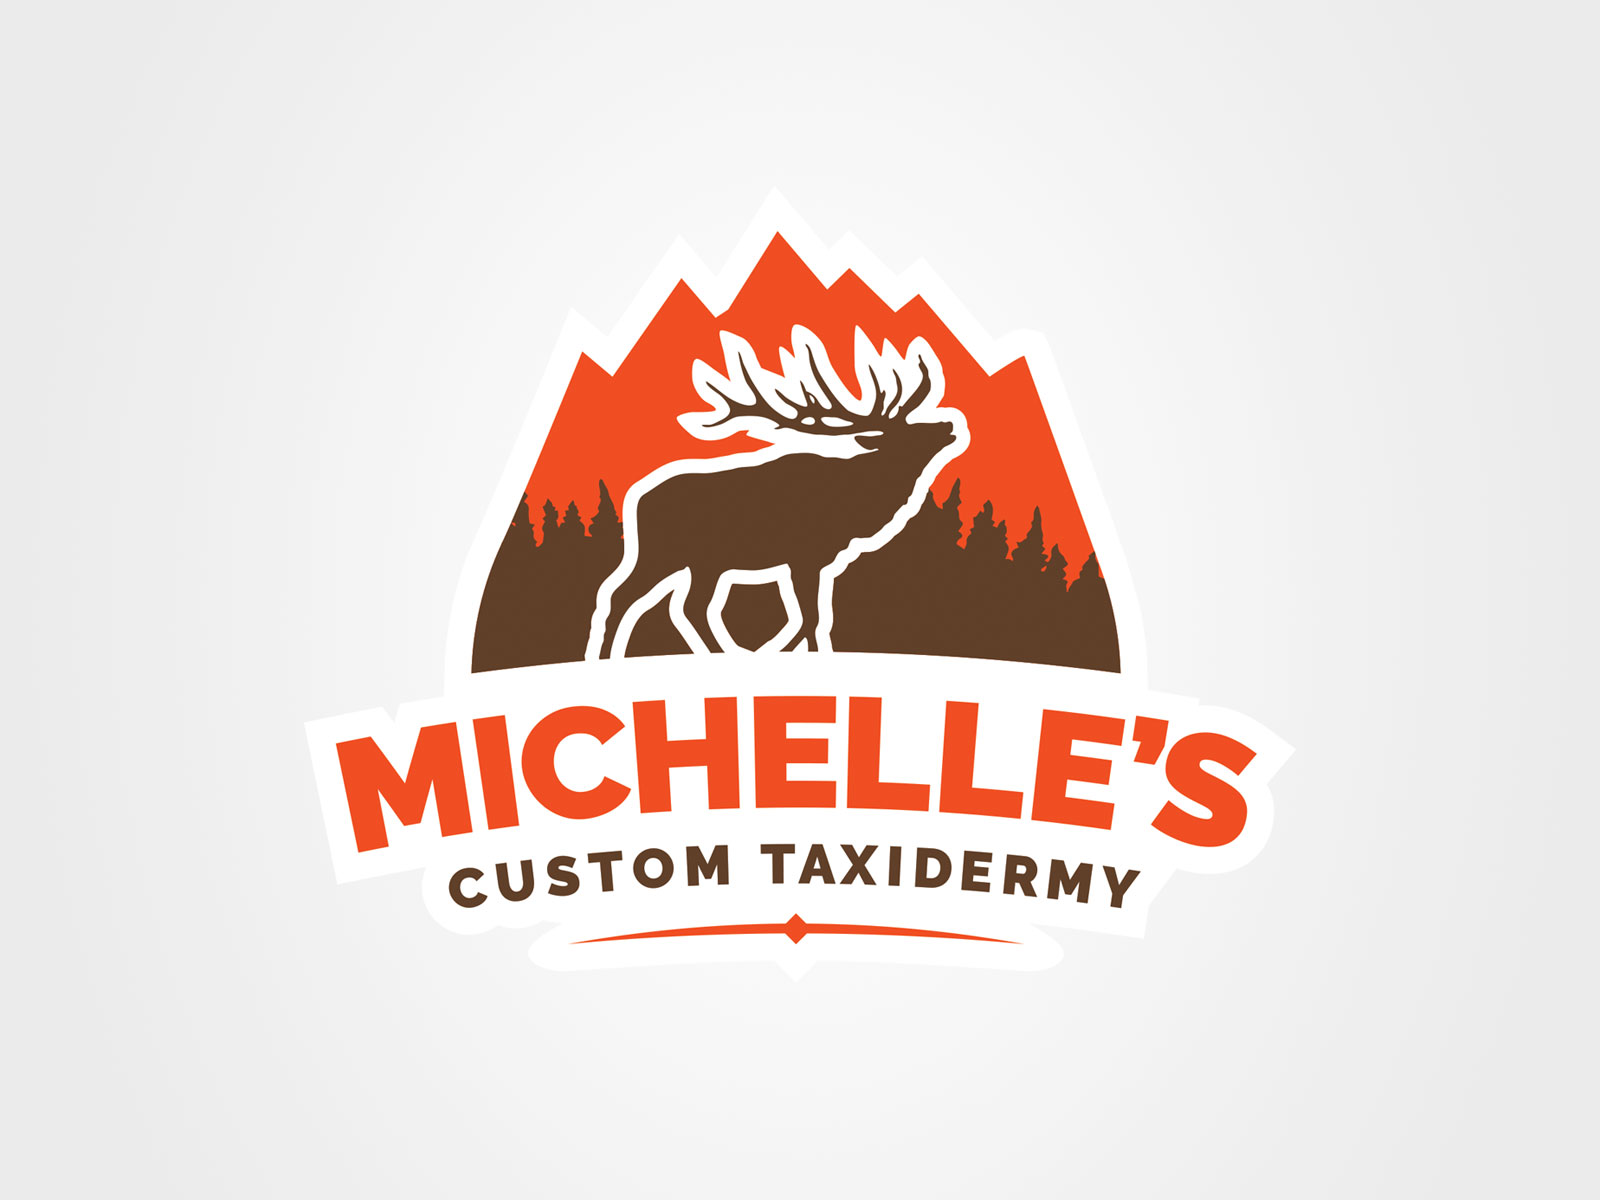 Michelle's Custom Taxidermy